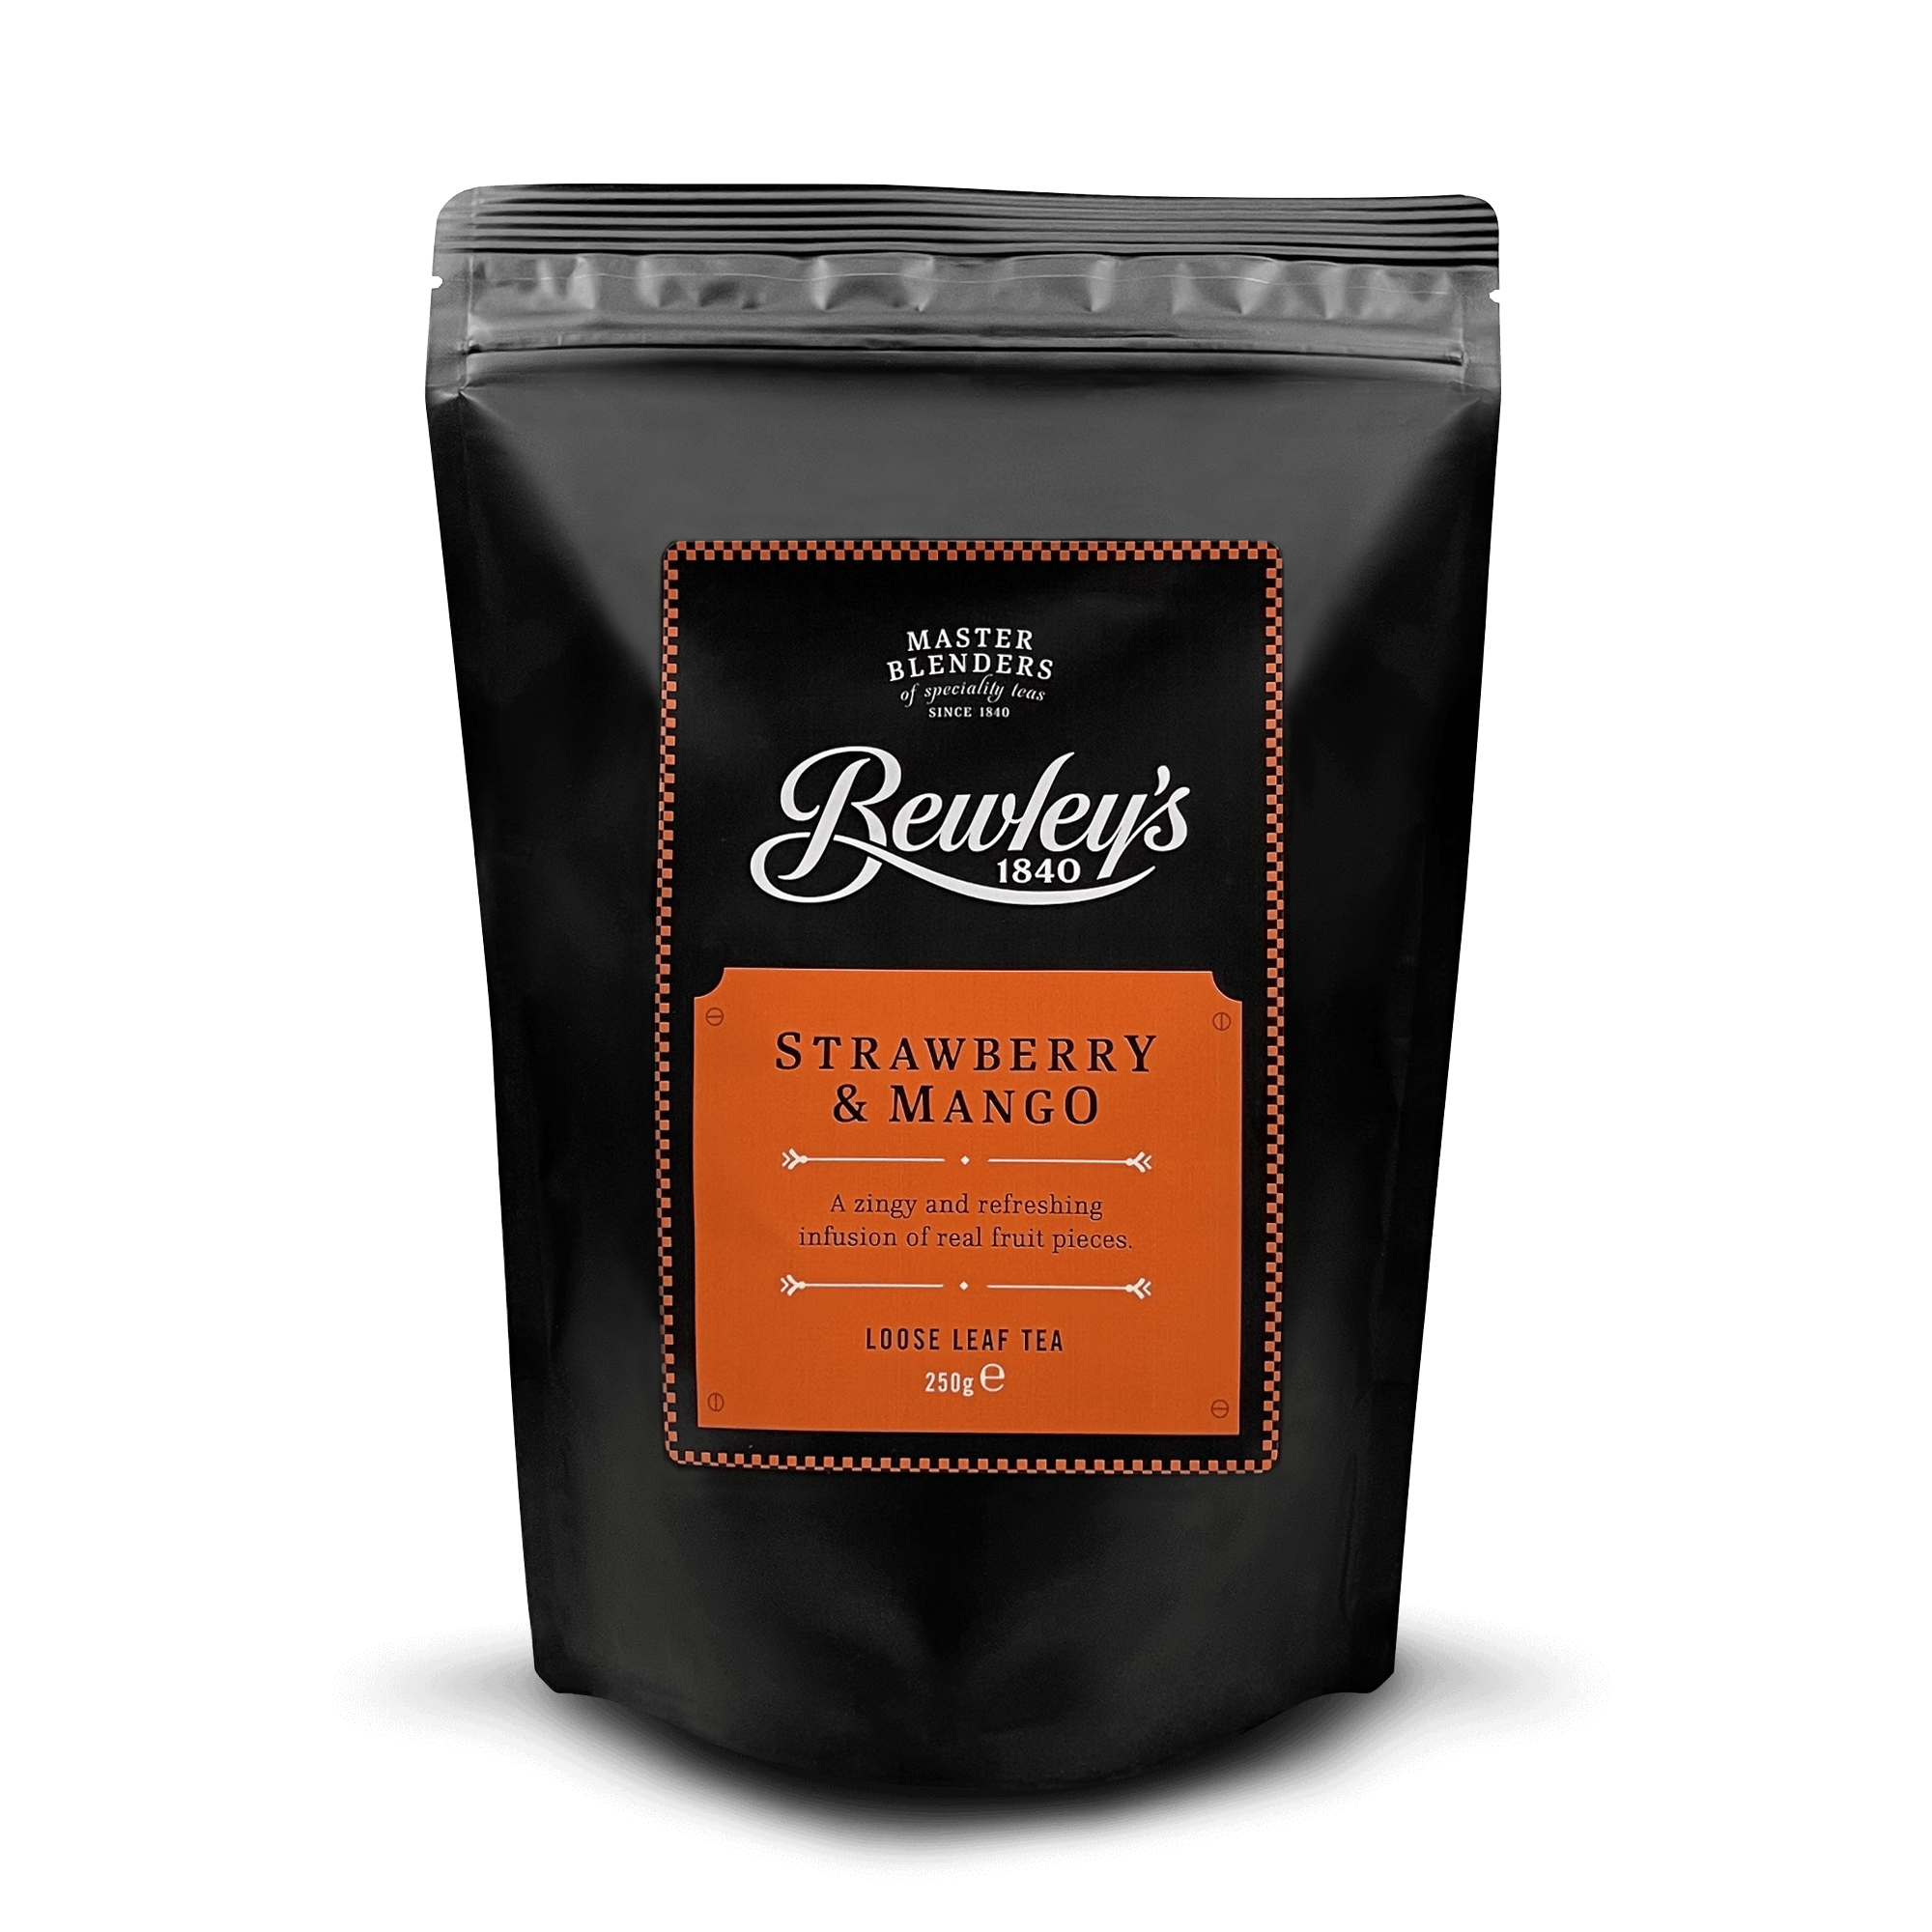 Bewley's Strawberry & Mango Loose Tea - Bewley's Tea & Coffee